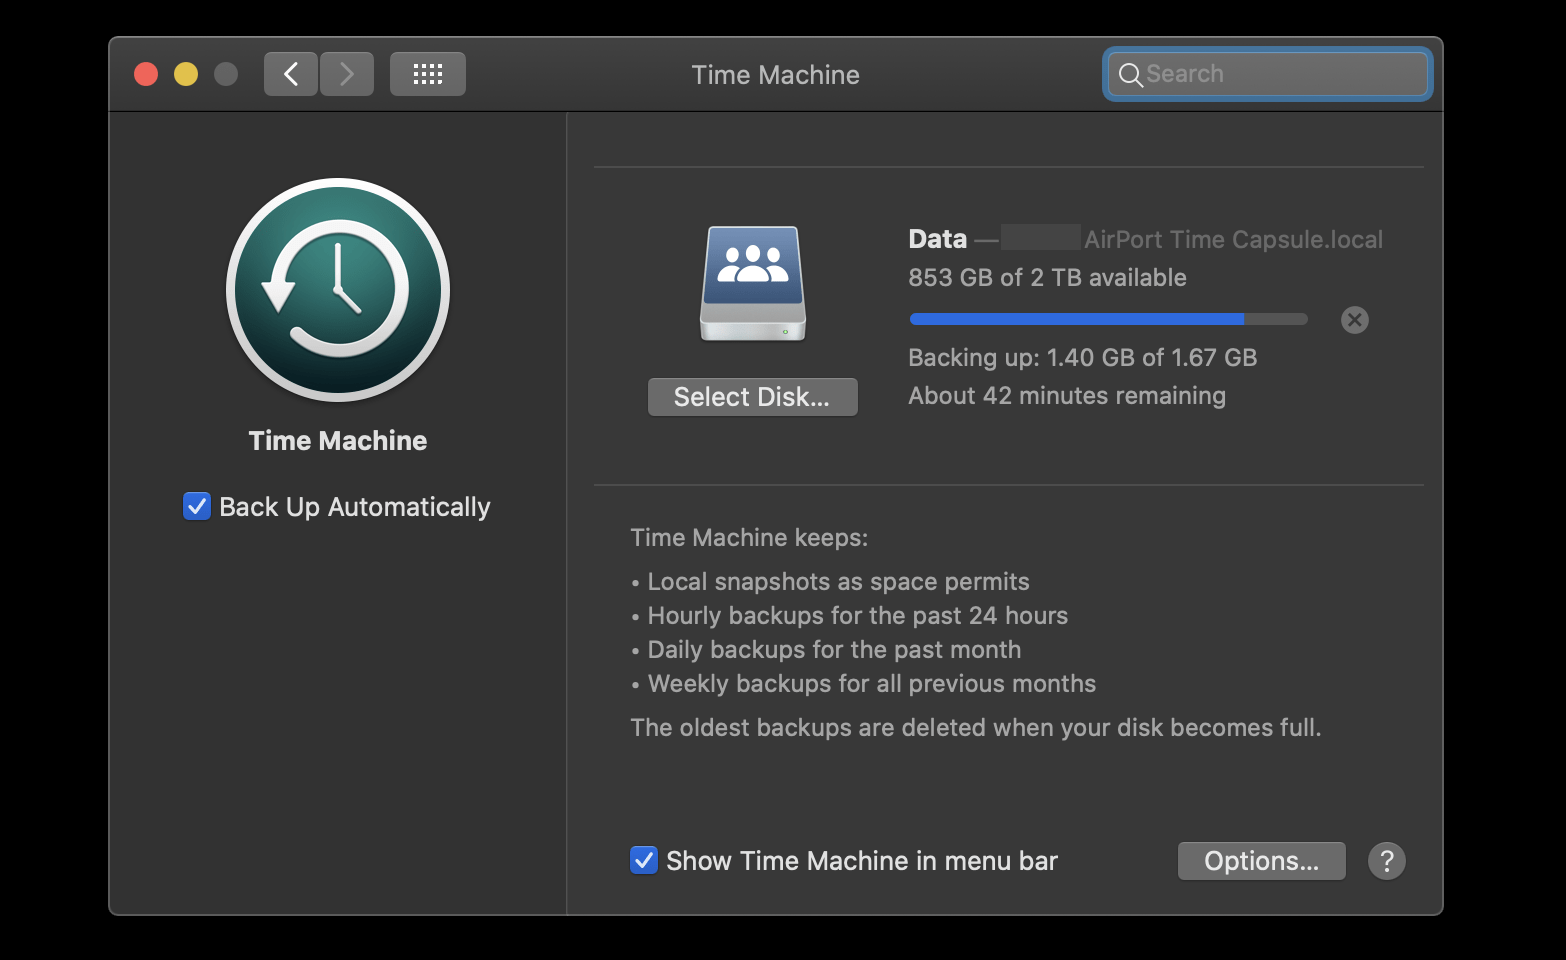 Time Machine backup